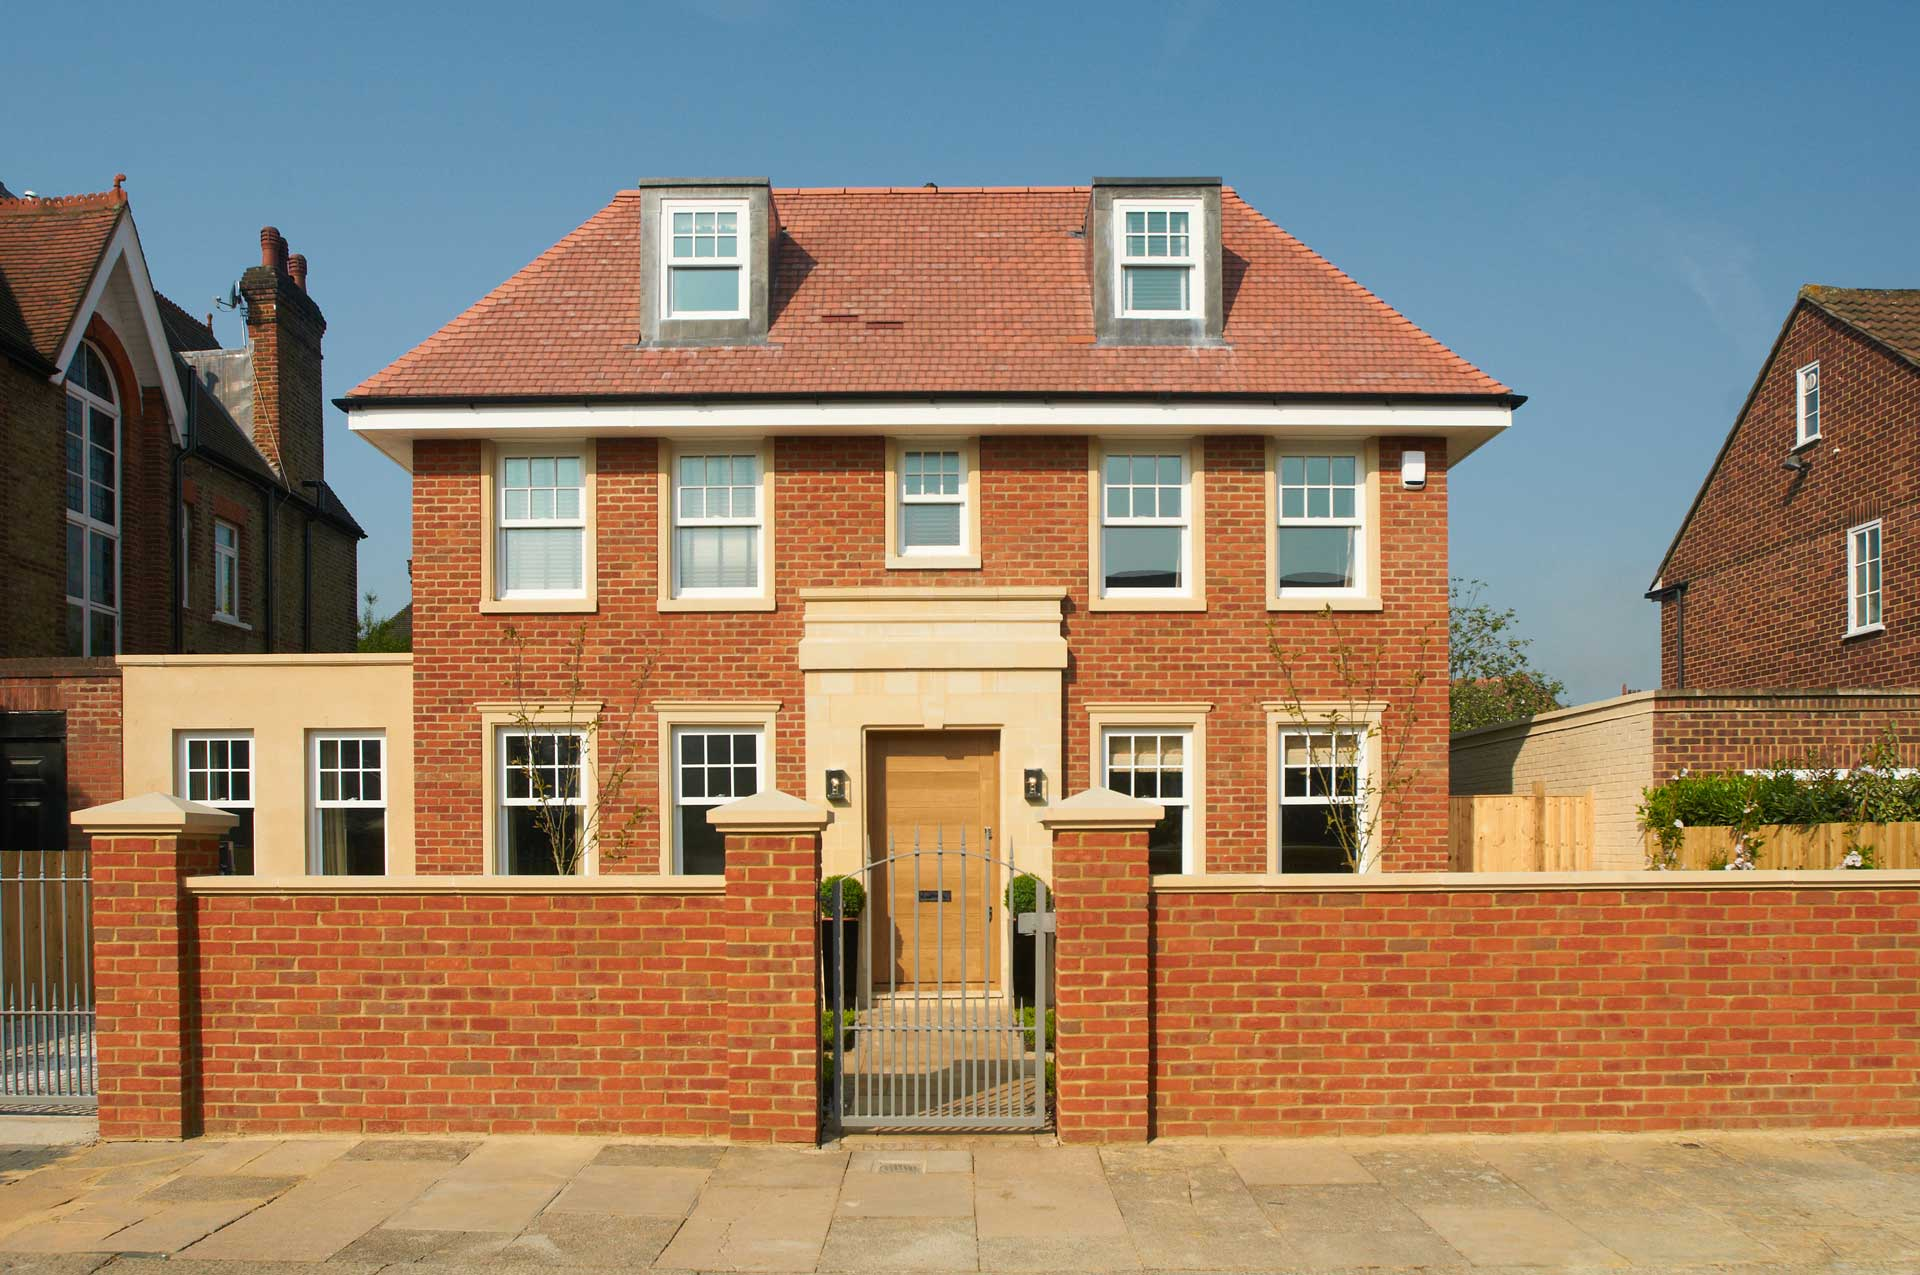 american colonial style house with sliding sash windows